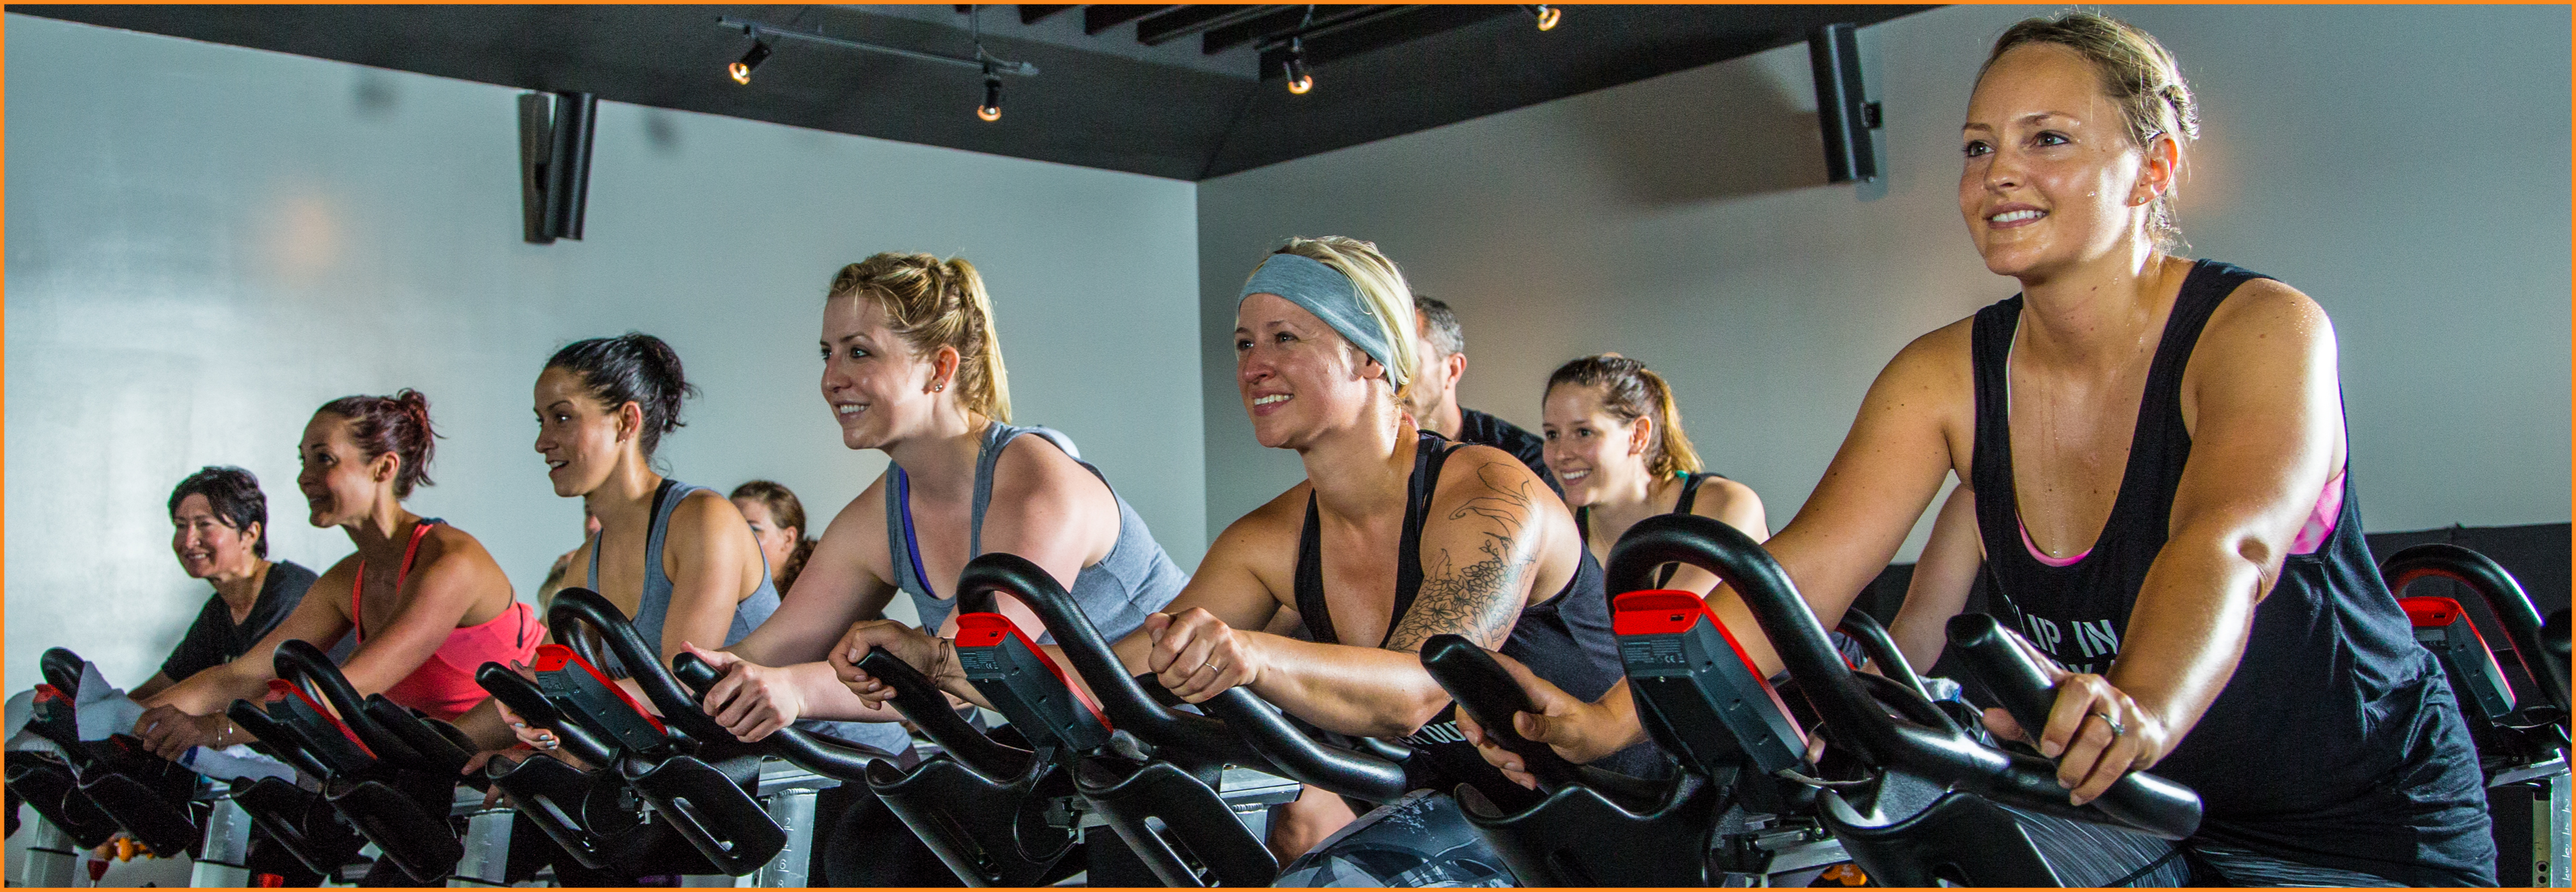 Indoor Cycling Class at Anchorage Yoga & Cycle